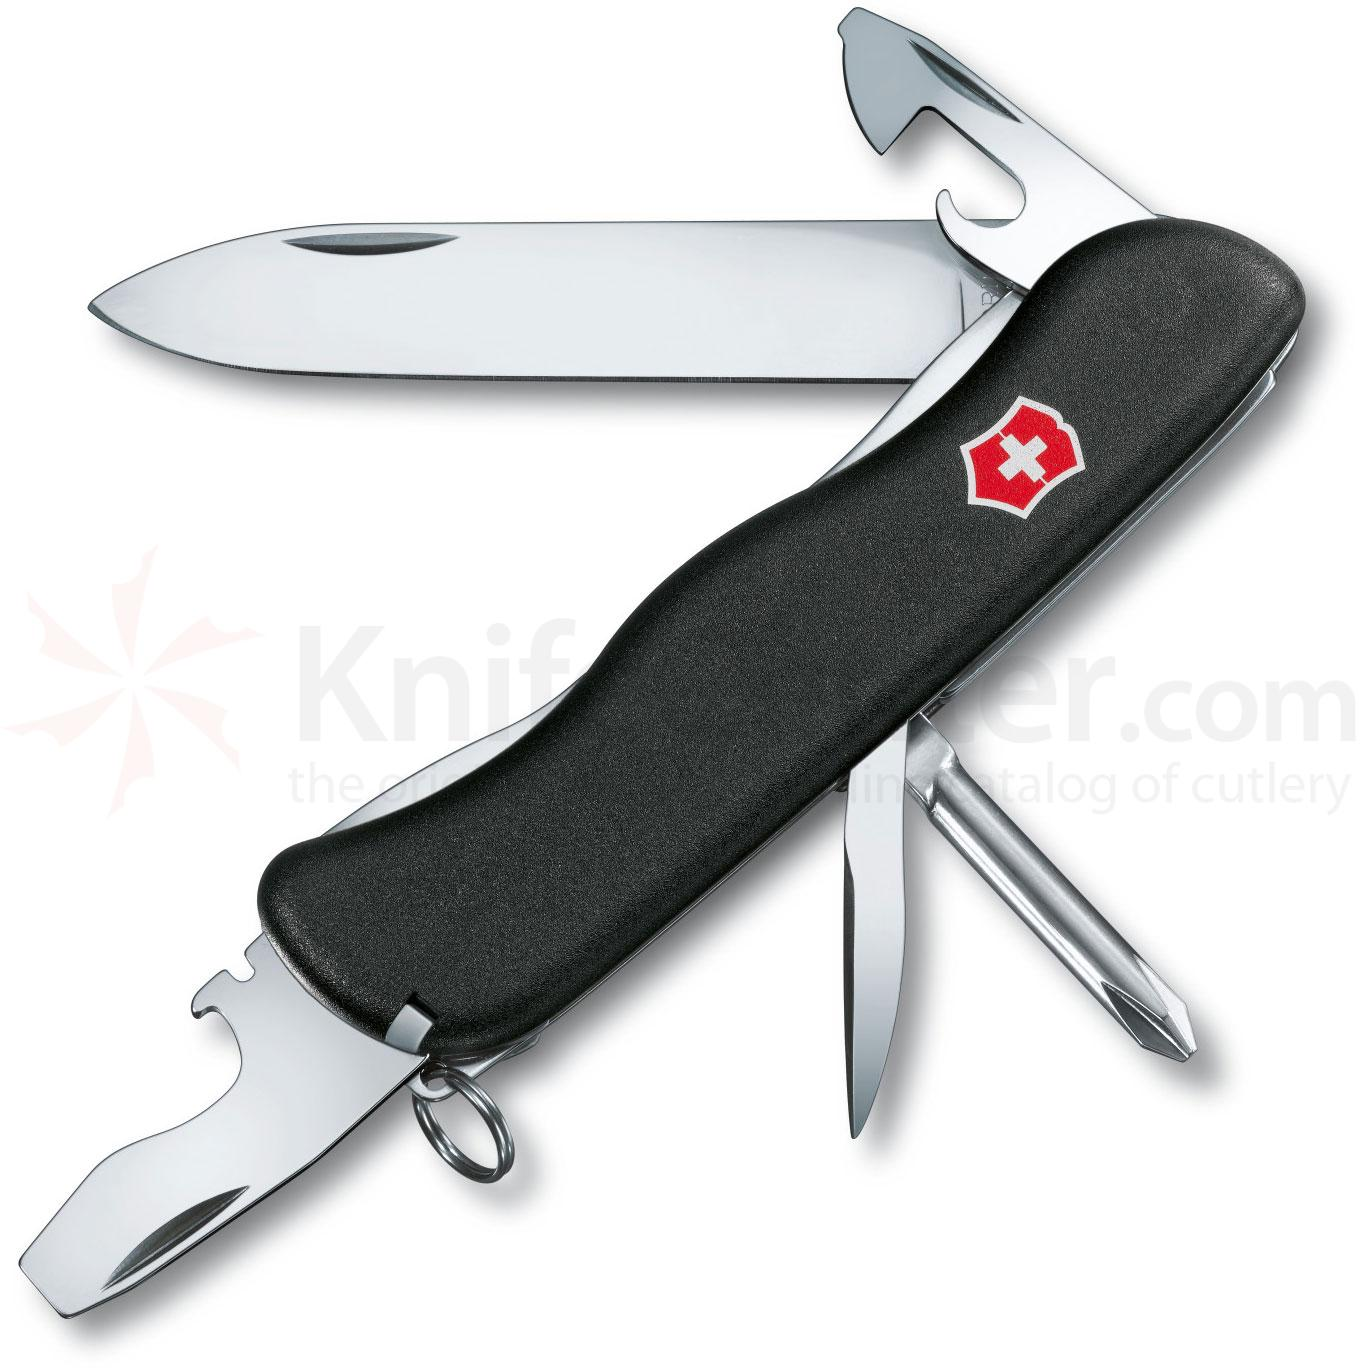 Victorinox Swiss Army Centurion Multi-Tool, Black, 4.37 inch Closed